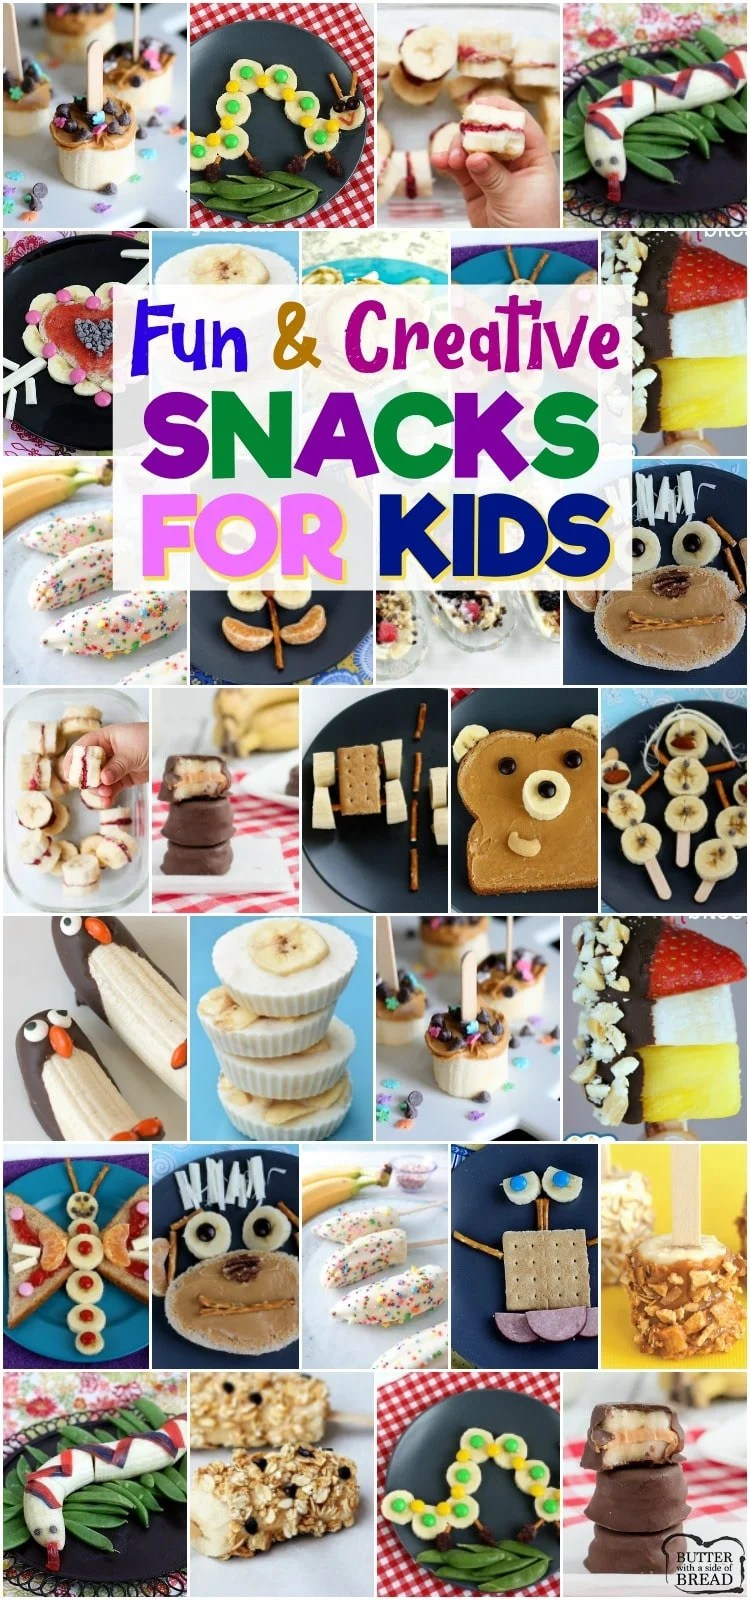 Snacks with Bananas are fun & healthy snacks perfect for even the pickiest of kids! These banana snacks are perfect for breakfast, lunch, snacks and treats! #bananas #snack #kidsnacks #snacks #fruit #lunch from BUTTER WITH A SIDE OF BREAD